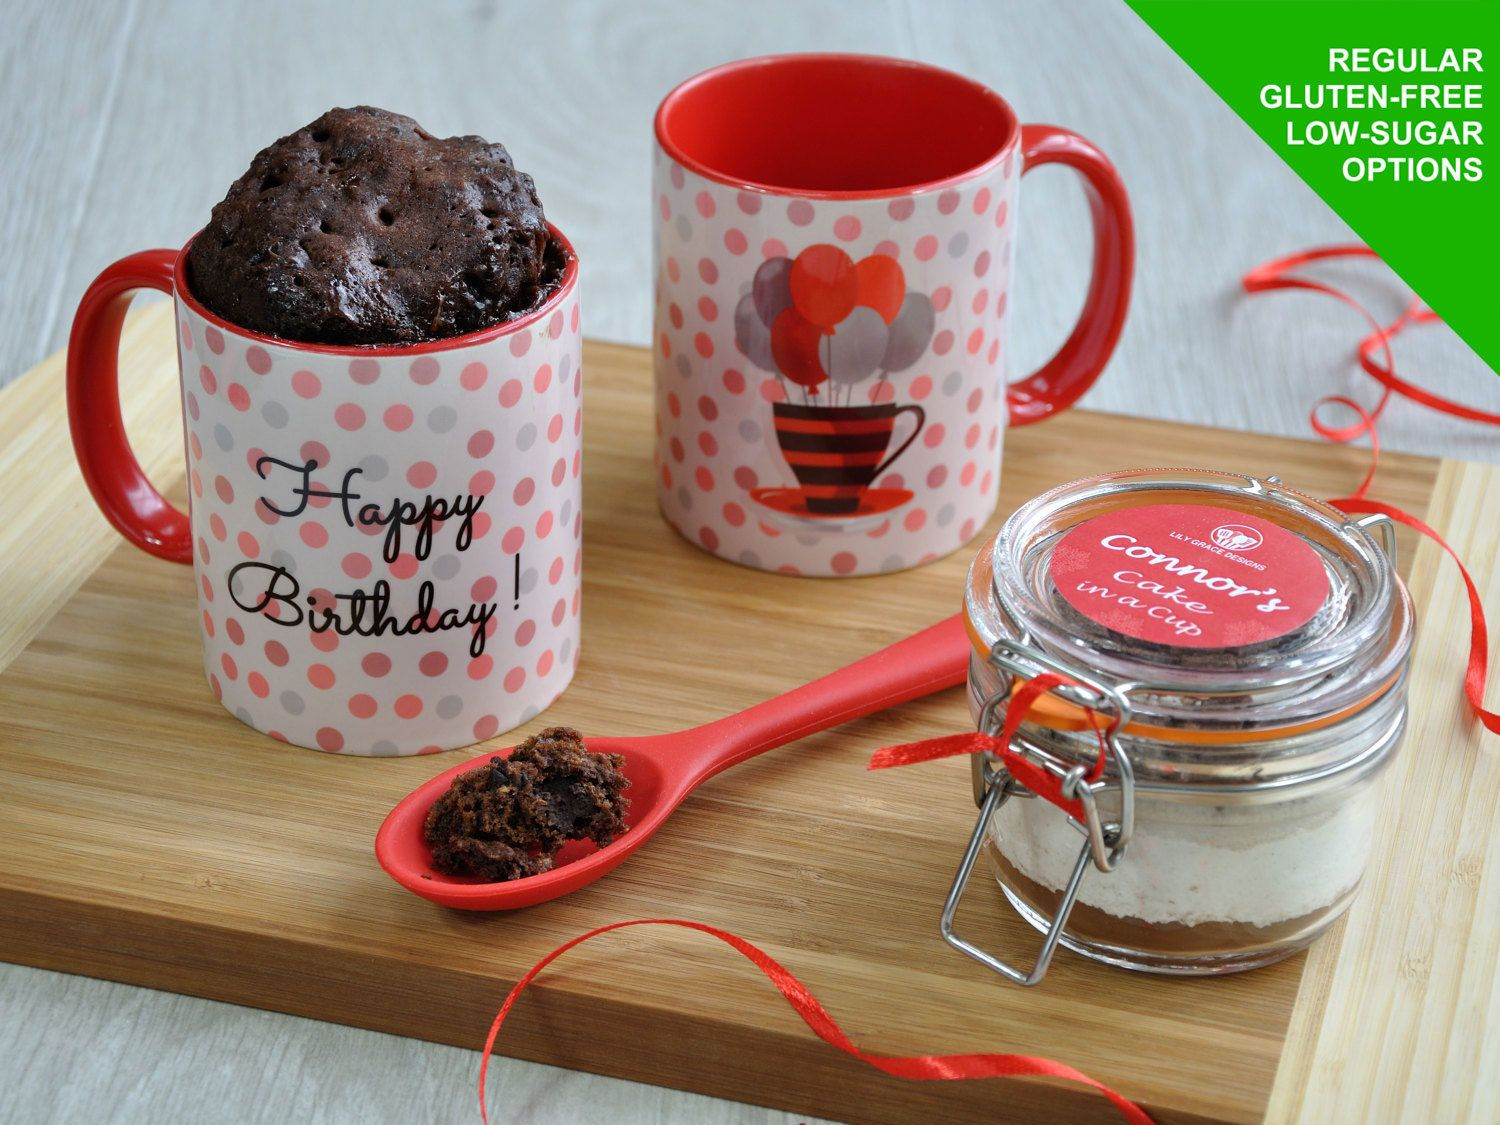 Baking Kit Happy Birthday Gluten Dairy Free Mug Cake For Him Gift Her Sweet Tooth Microwave Chocoholic